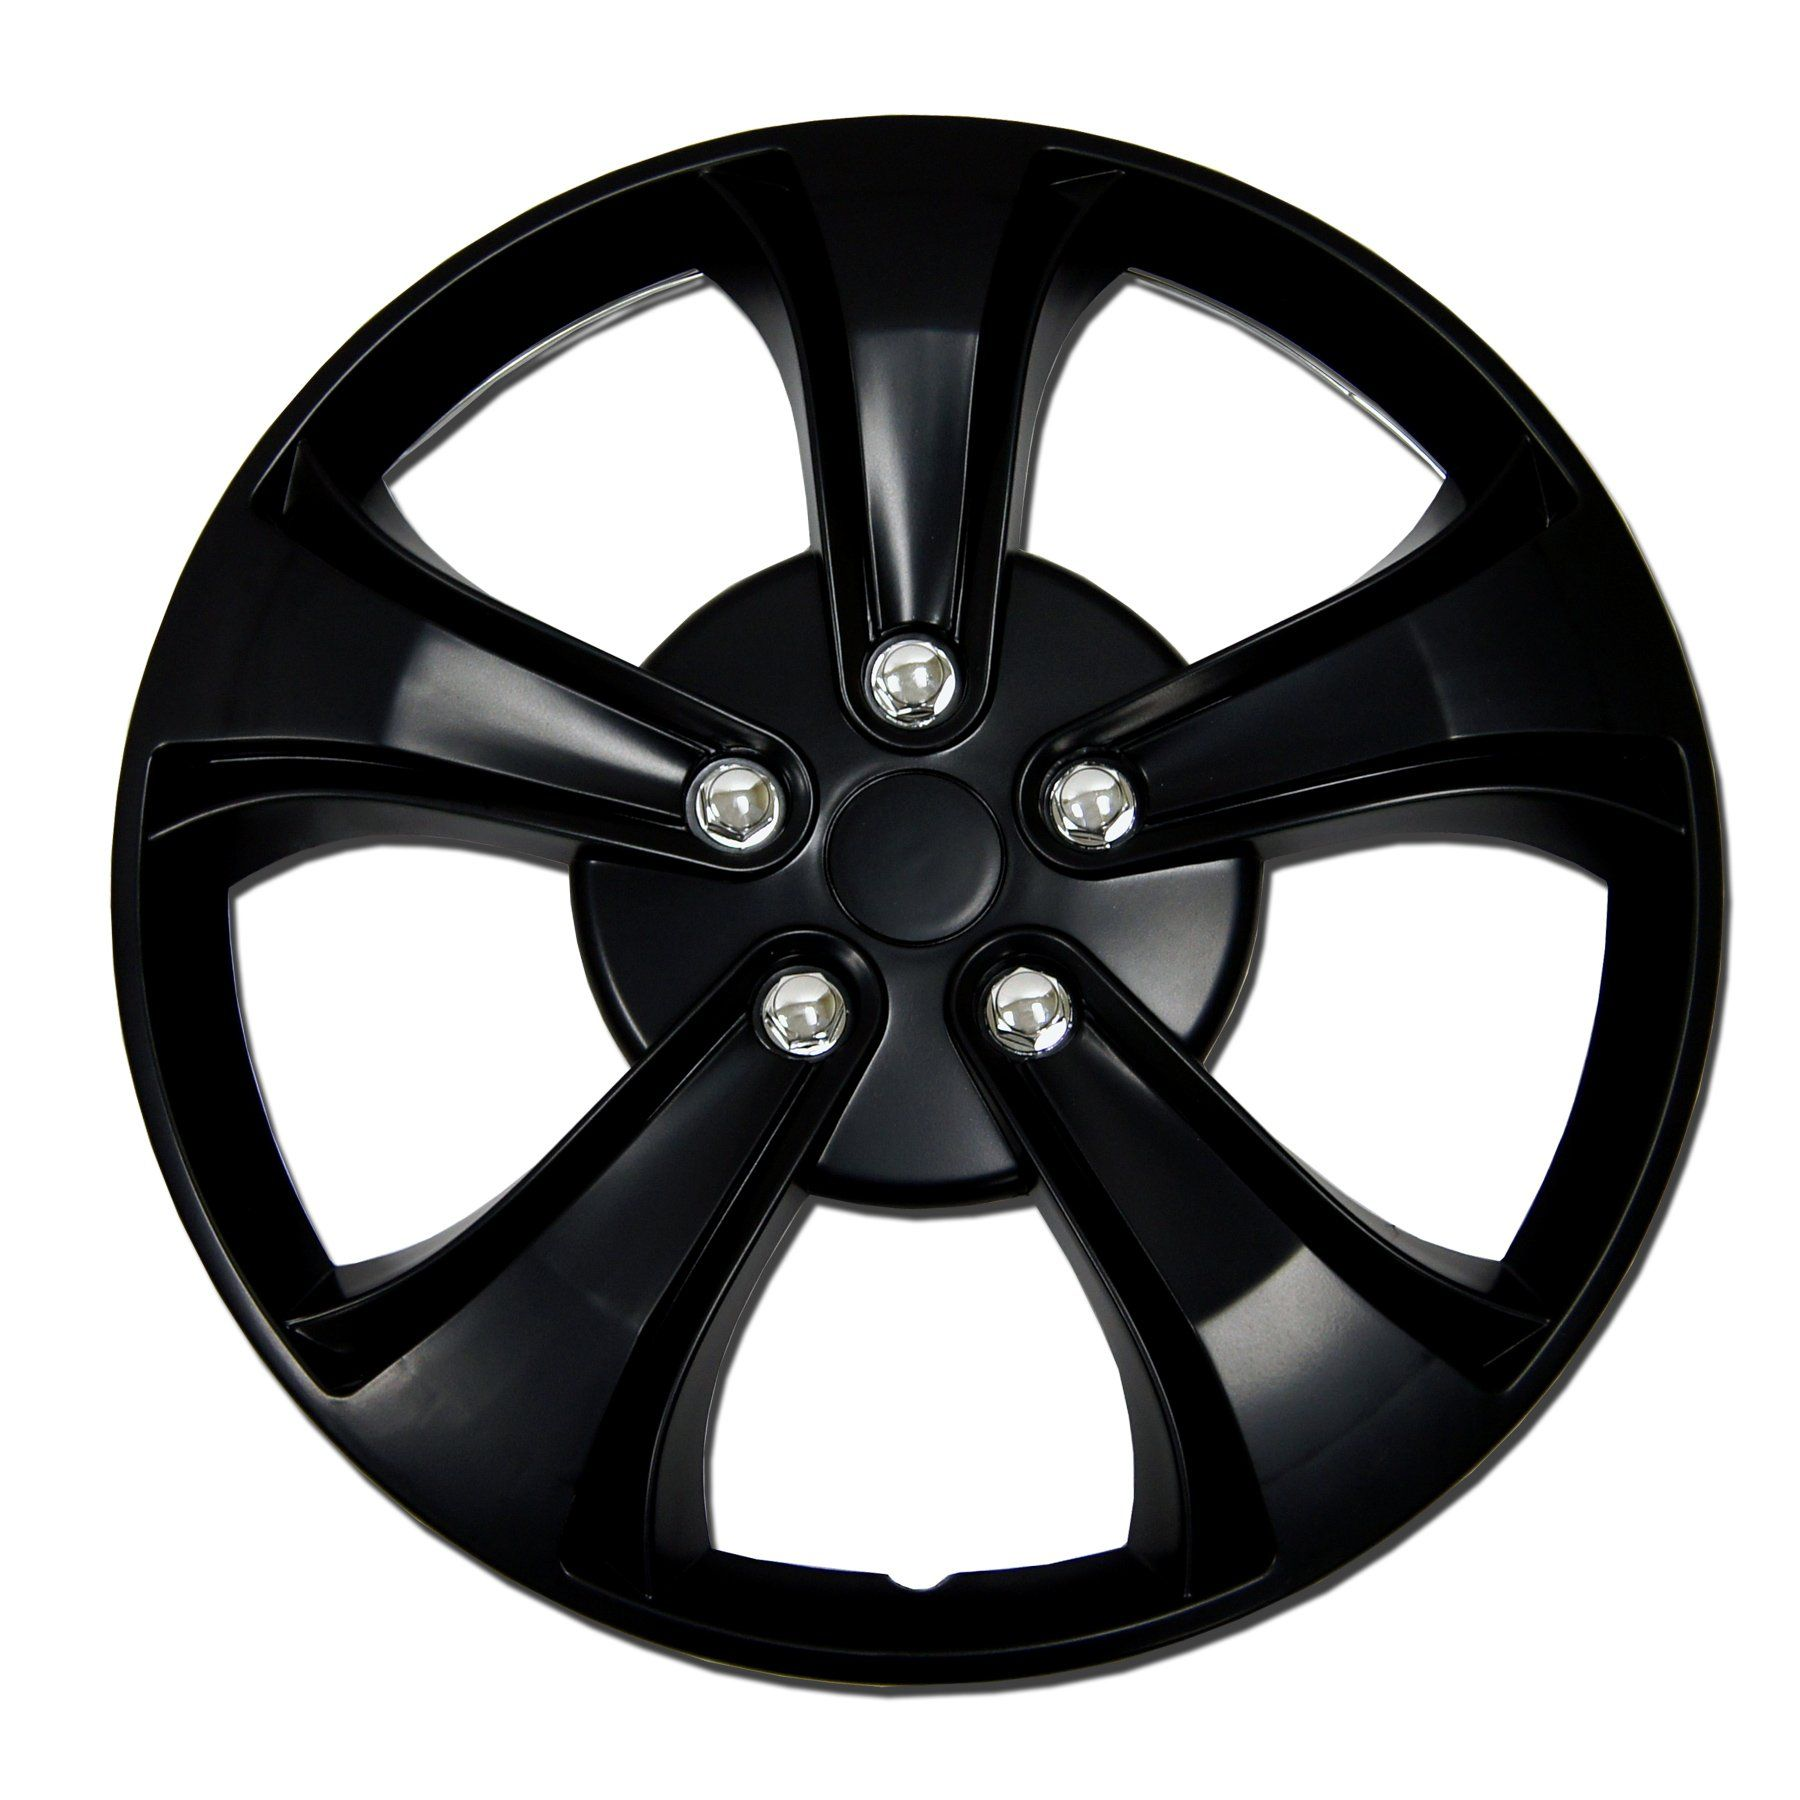 ABS Black/ Red 15-inch Design Hubcaps (Set of 4) | Products | Replica wheels, Aftermarket wheels, Toyota paseo